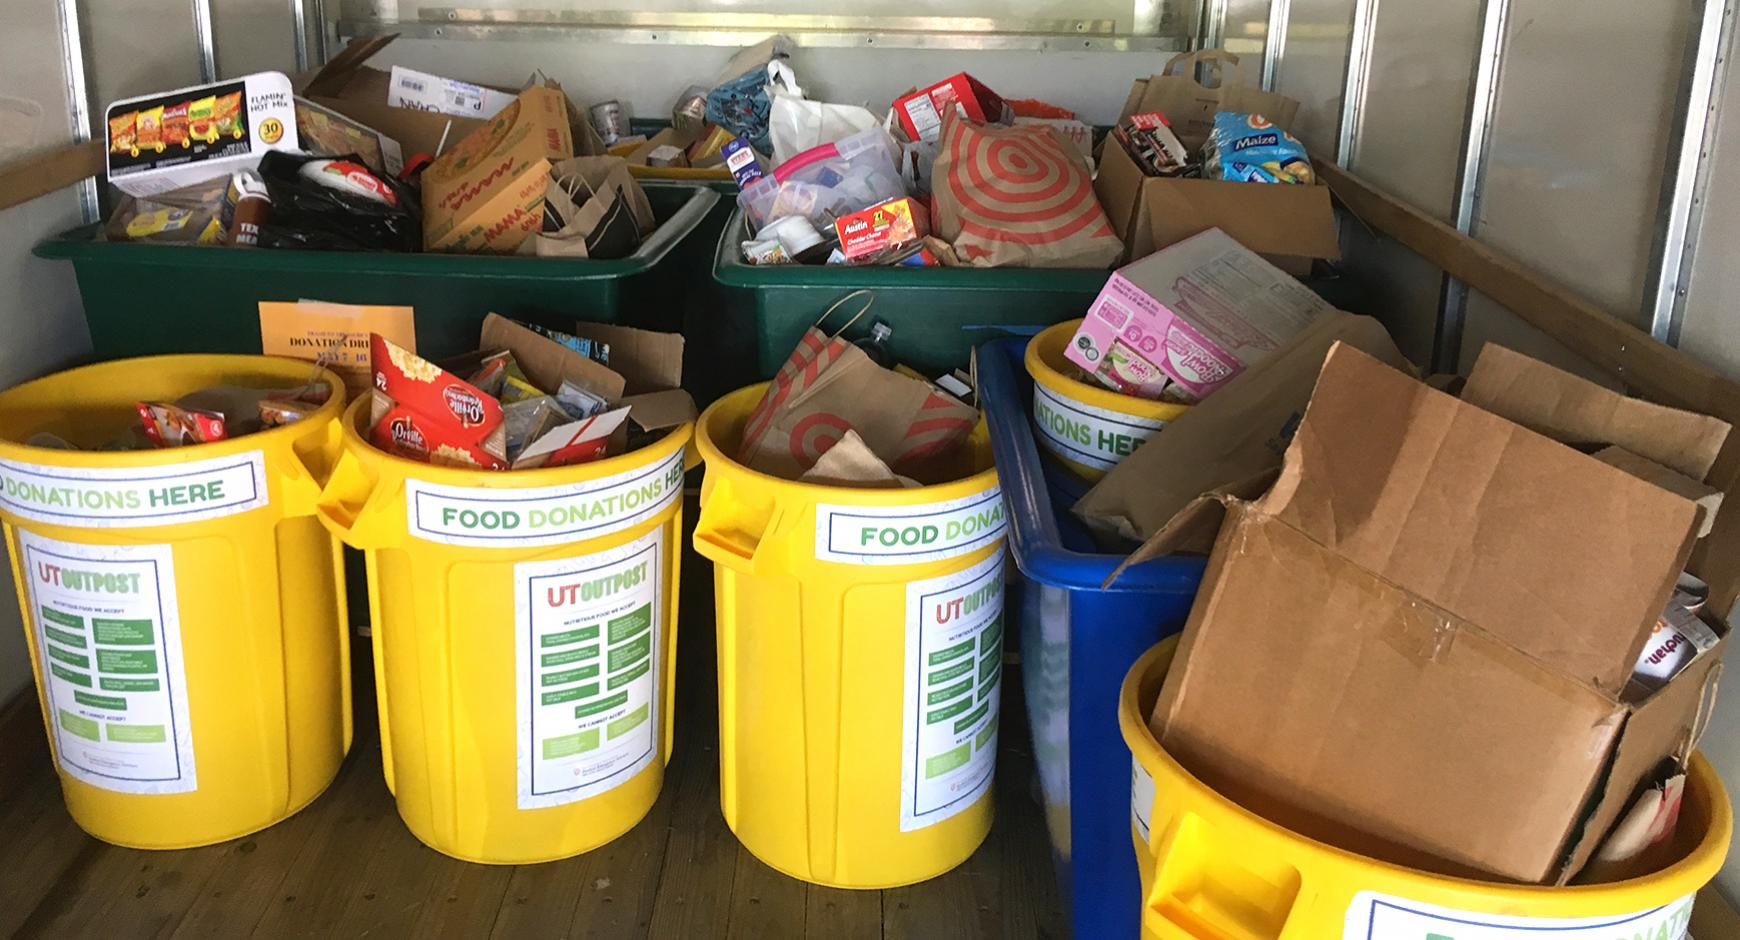 Donated food headed to UT Outpost